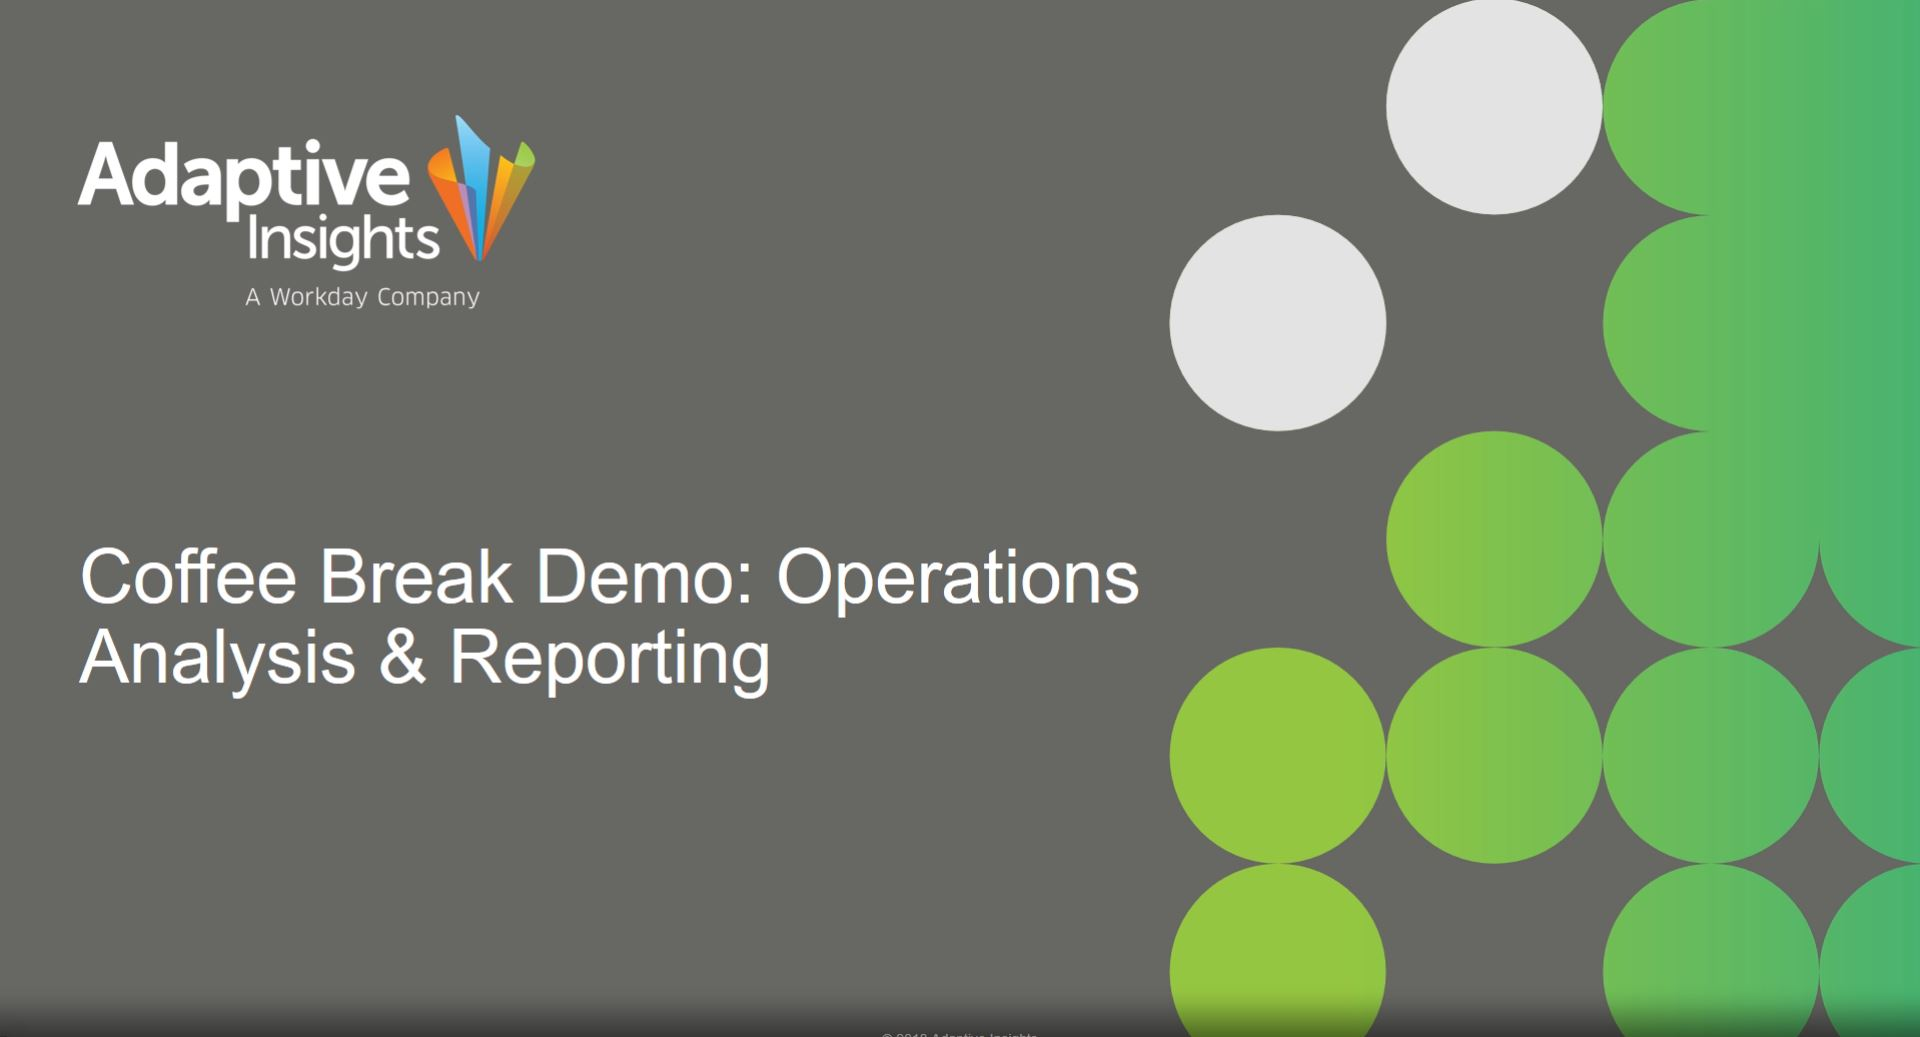 Coffee Break Demo - Analysis and Reporting